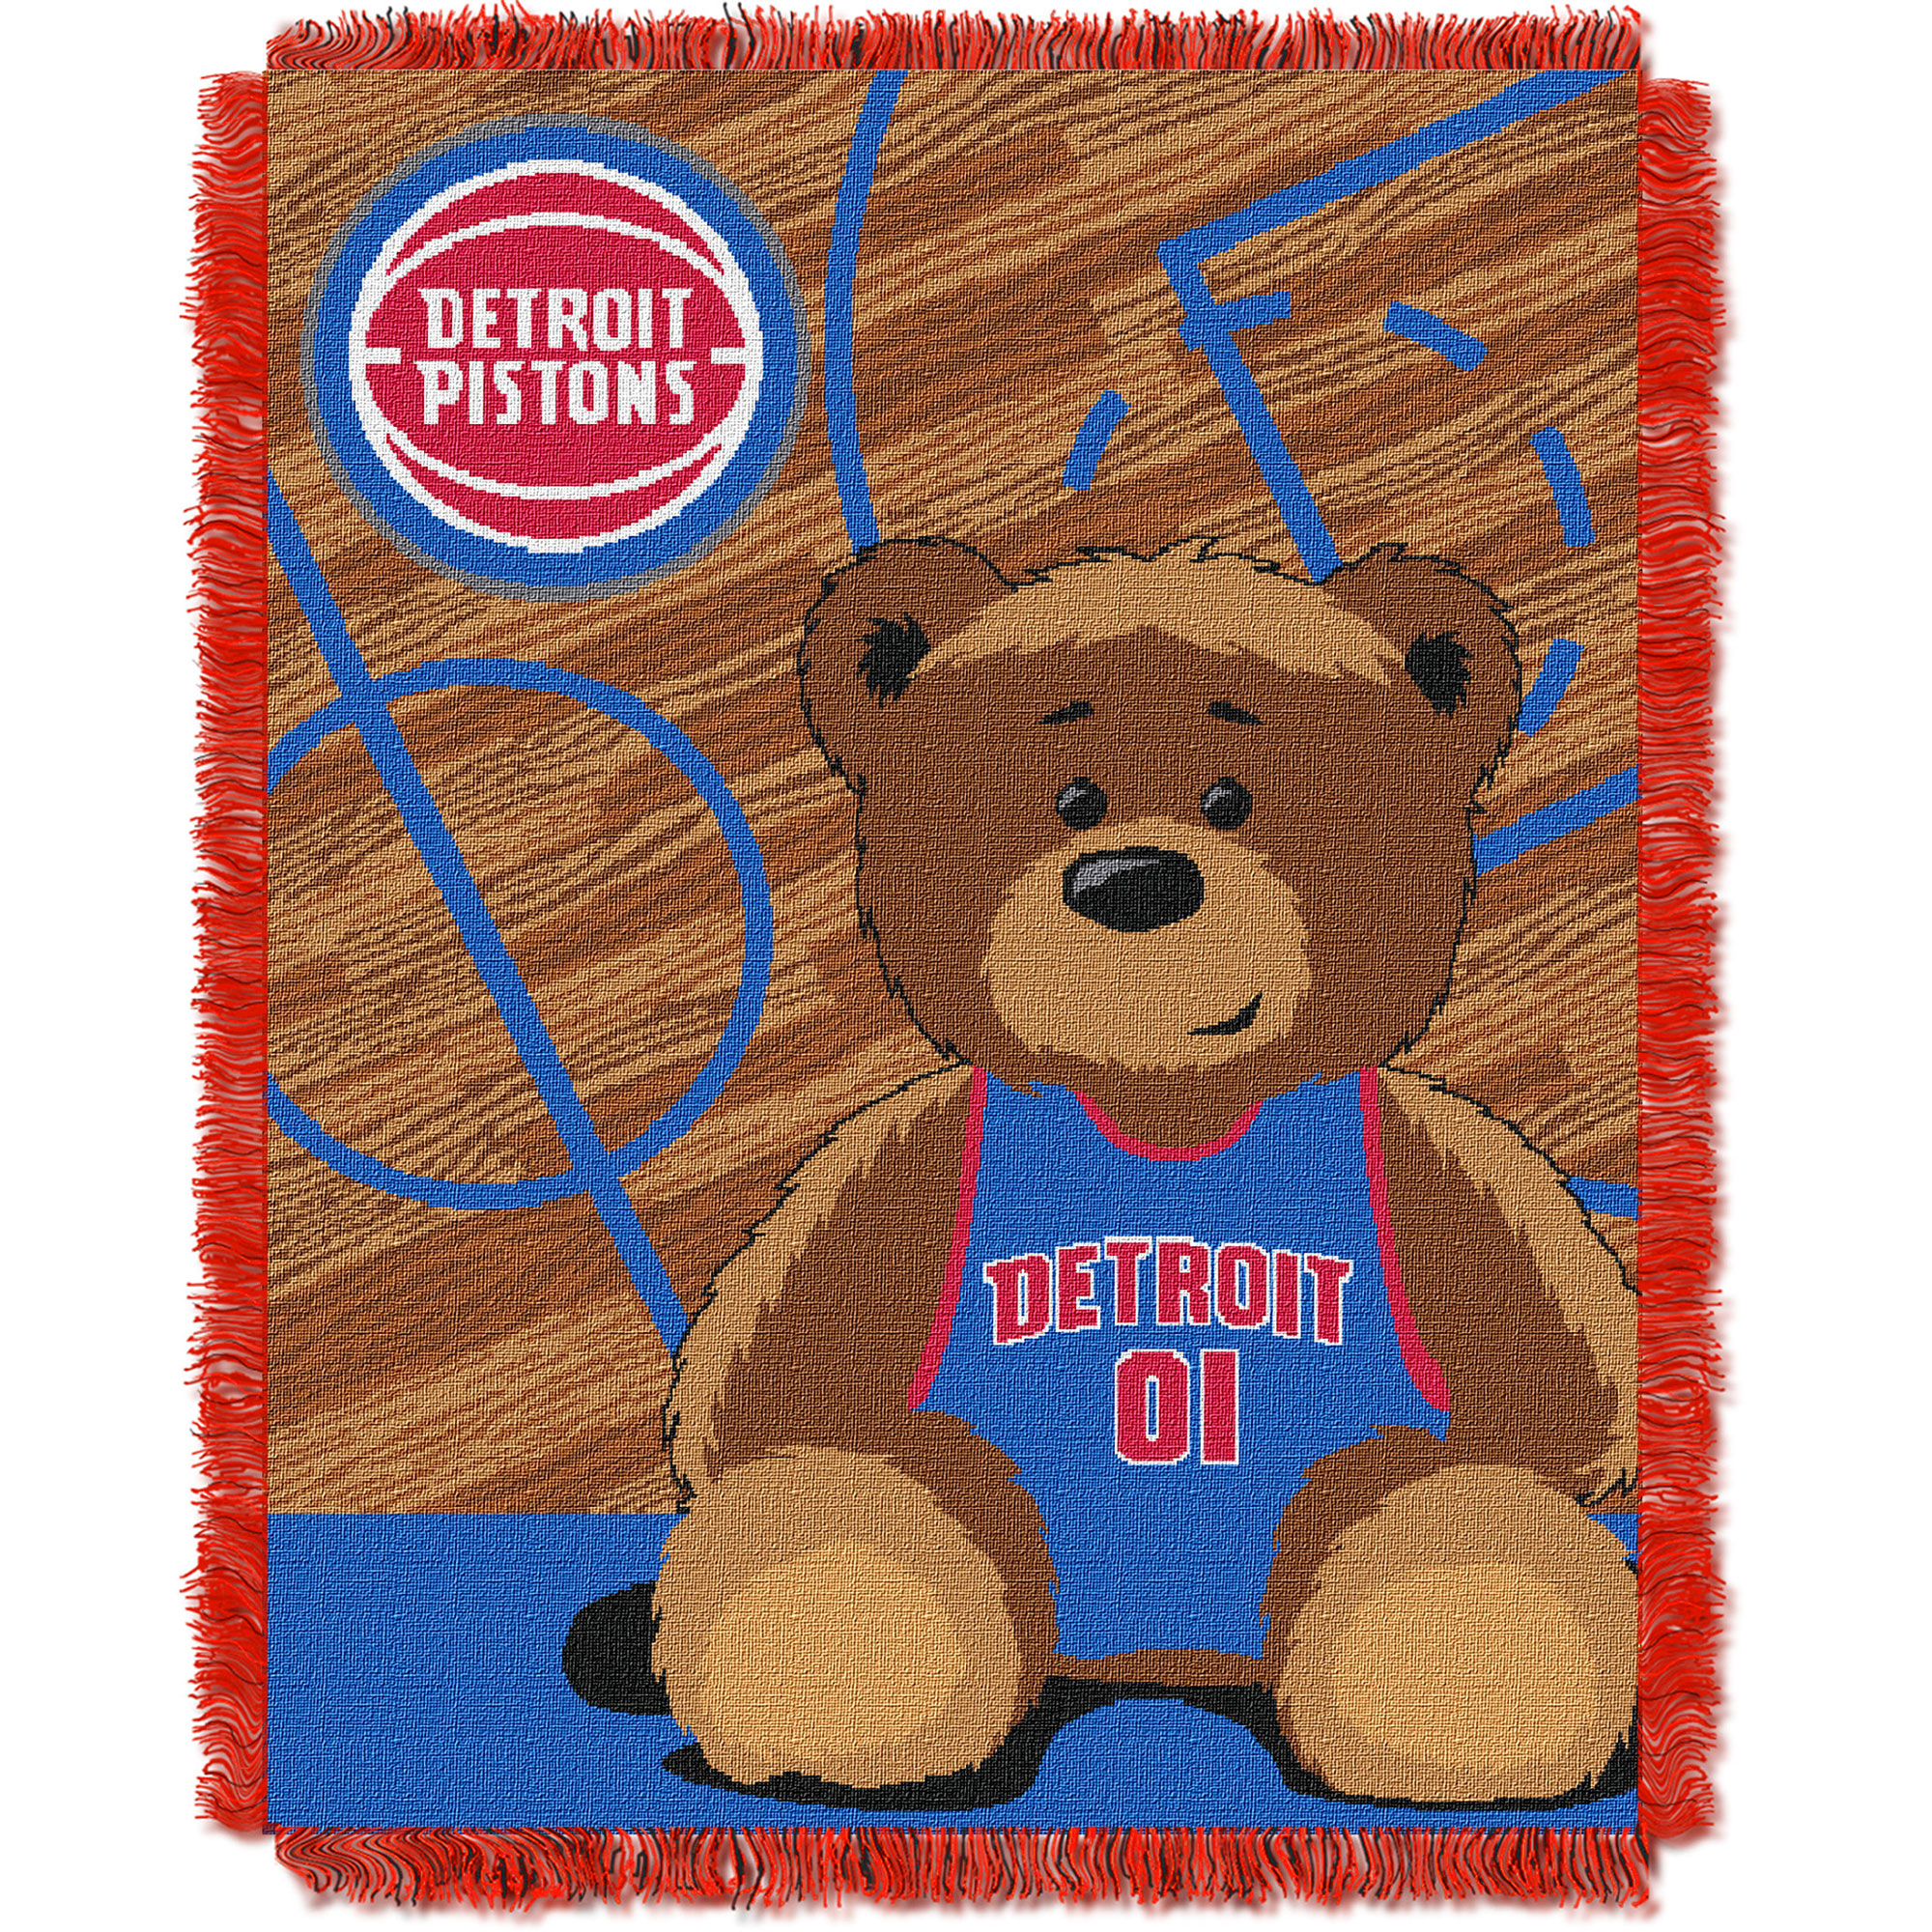 Detroit Pistons The Northwest Company 36'' x 46'' Baby Jaquard Throw - No Size